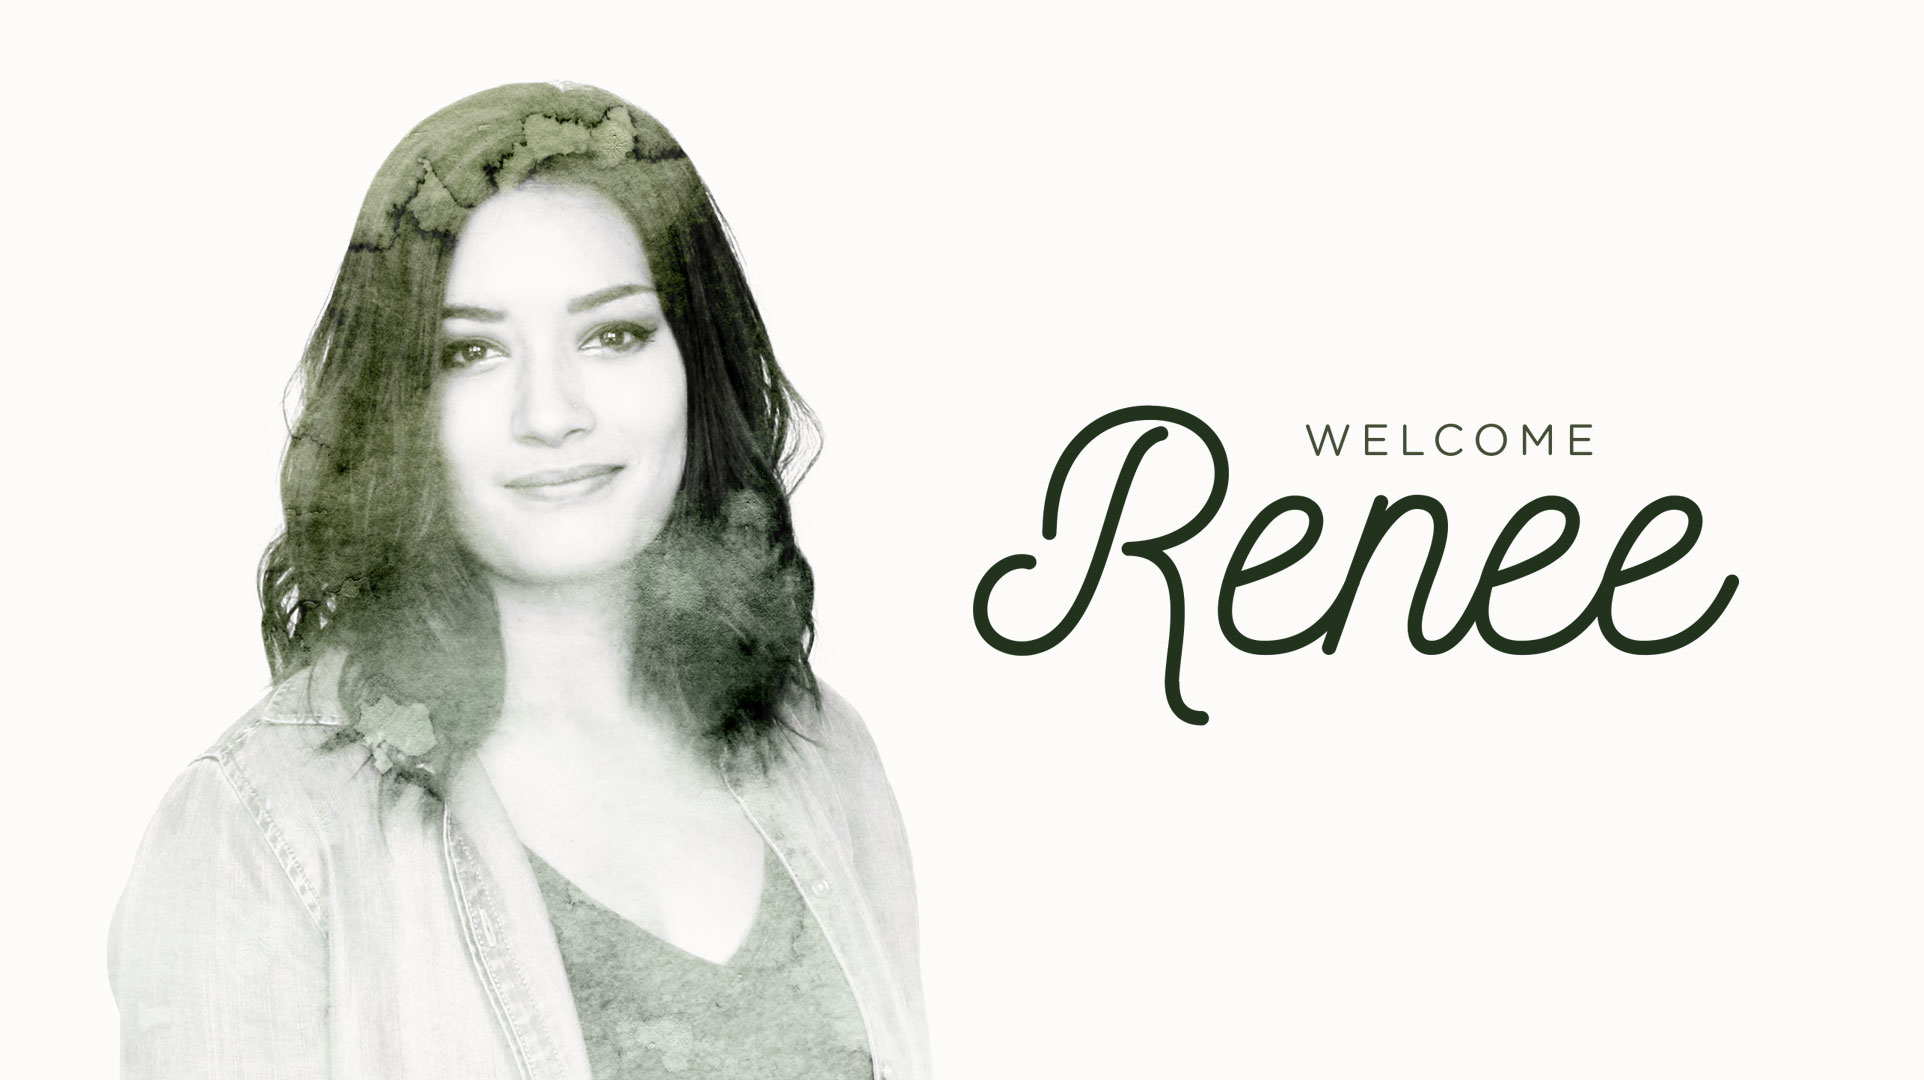 renee-welcome-1